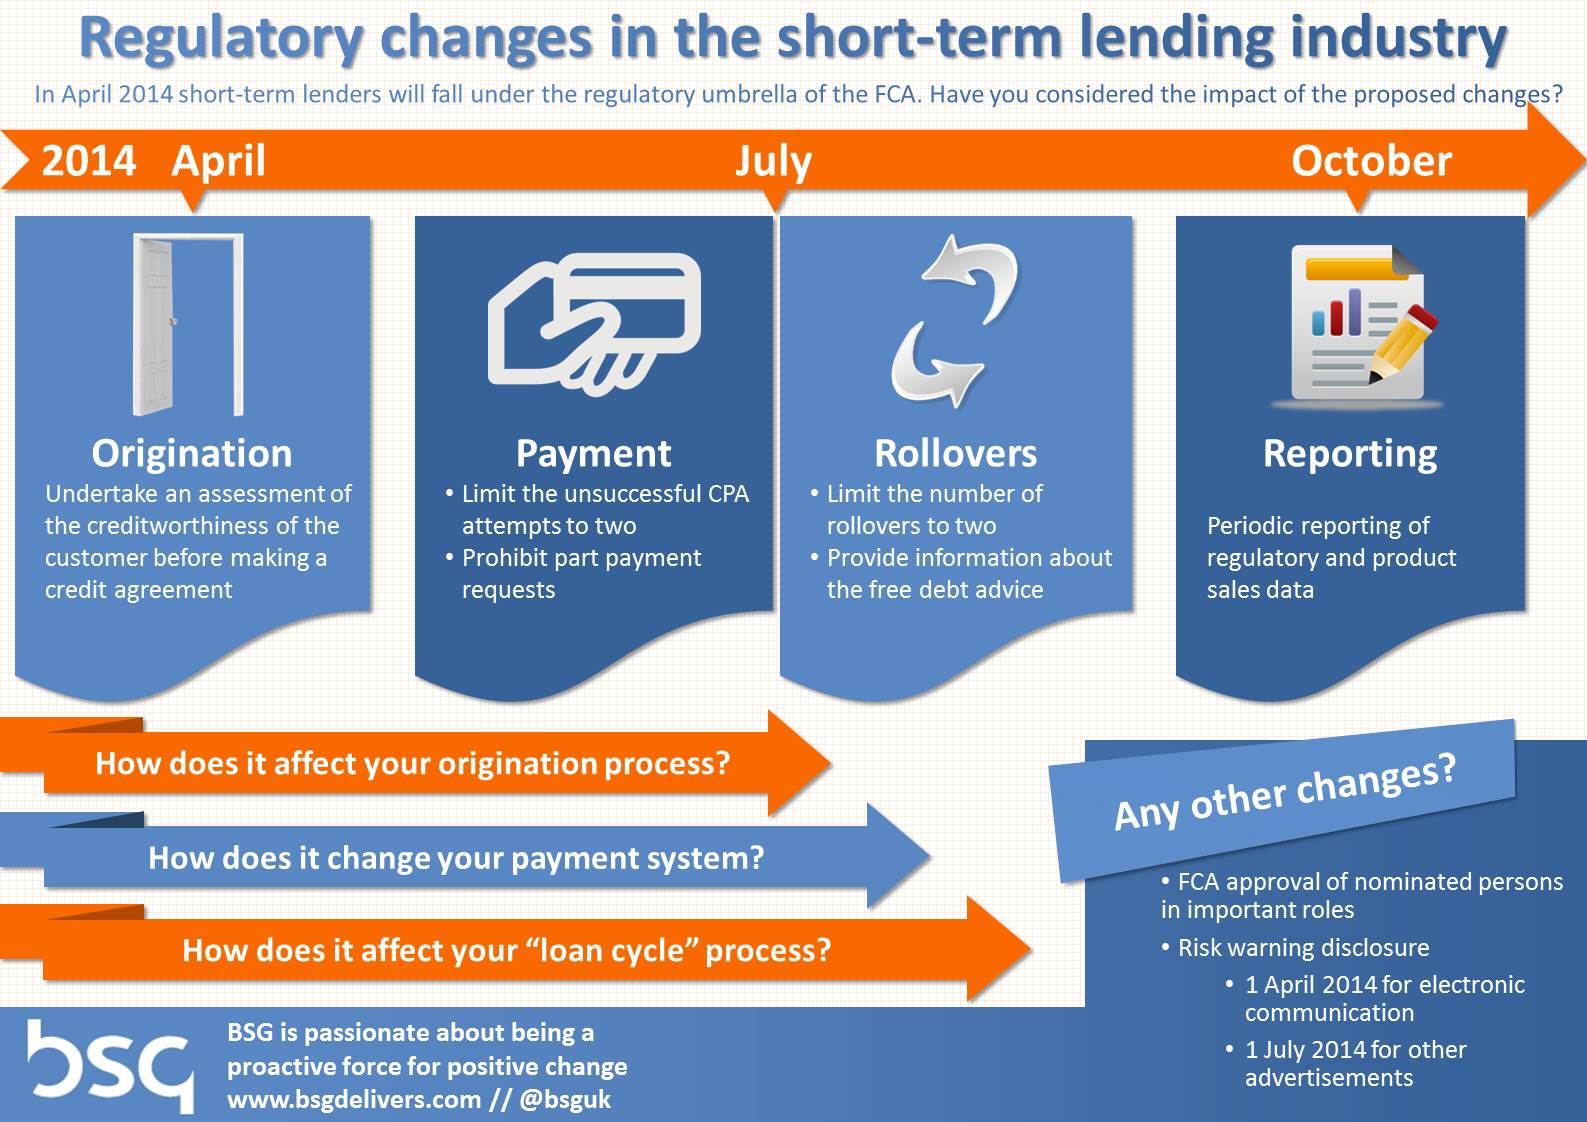 Regulatory changes in the short-term lending industry